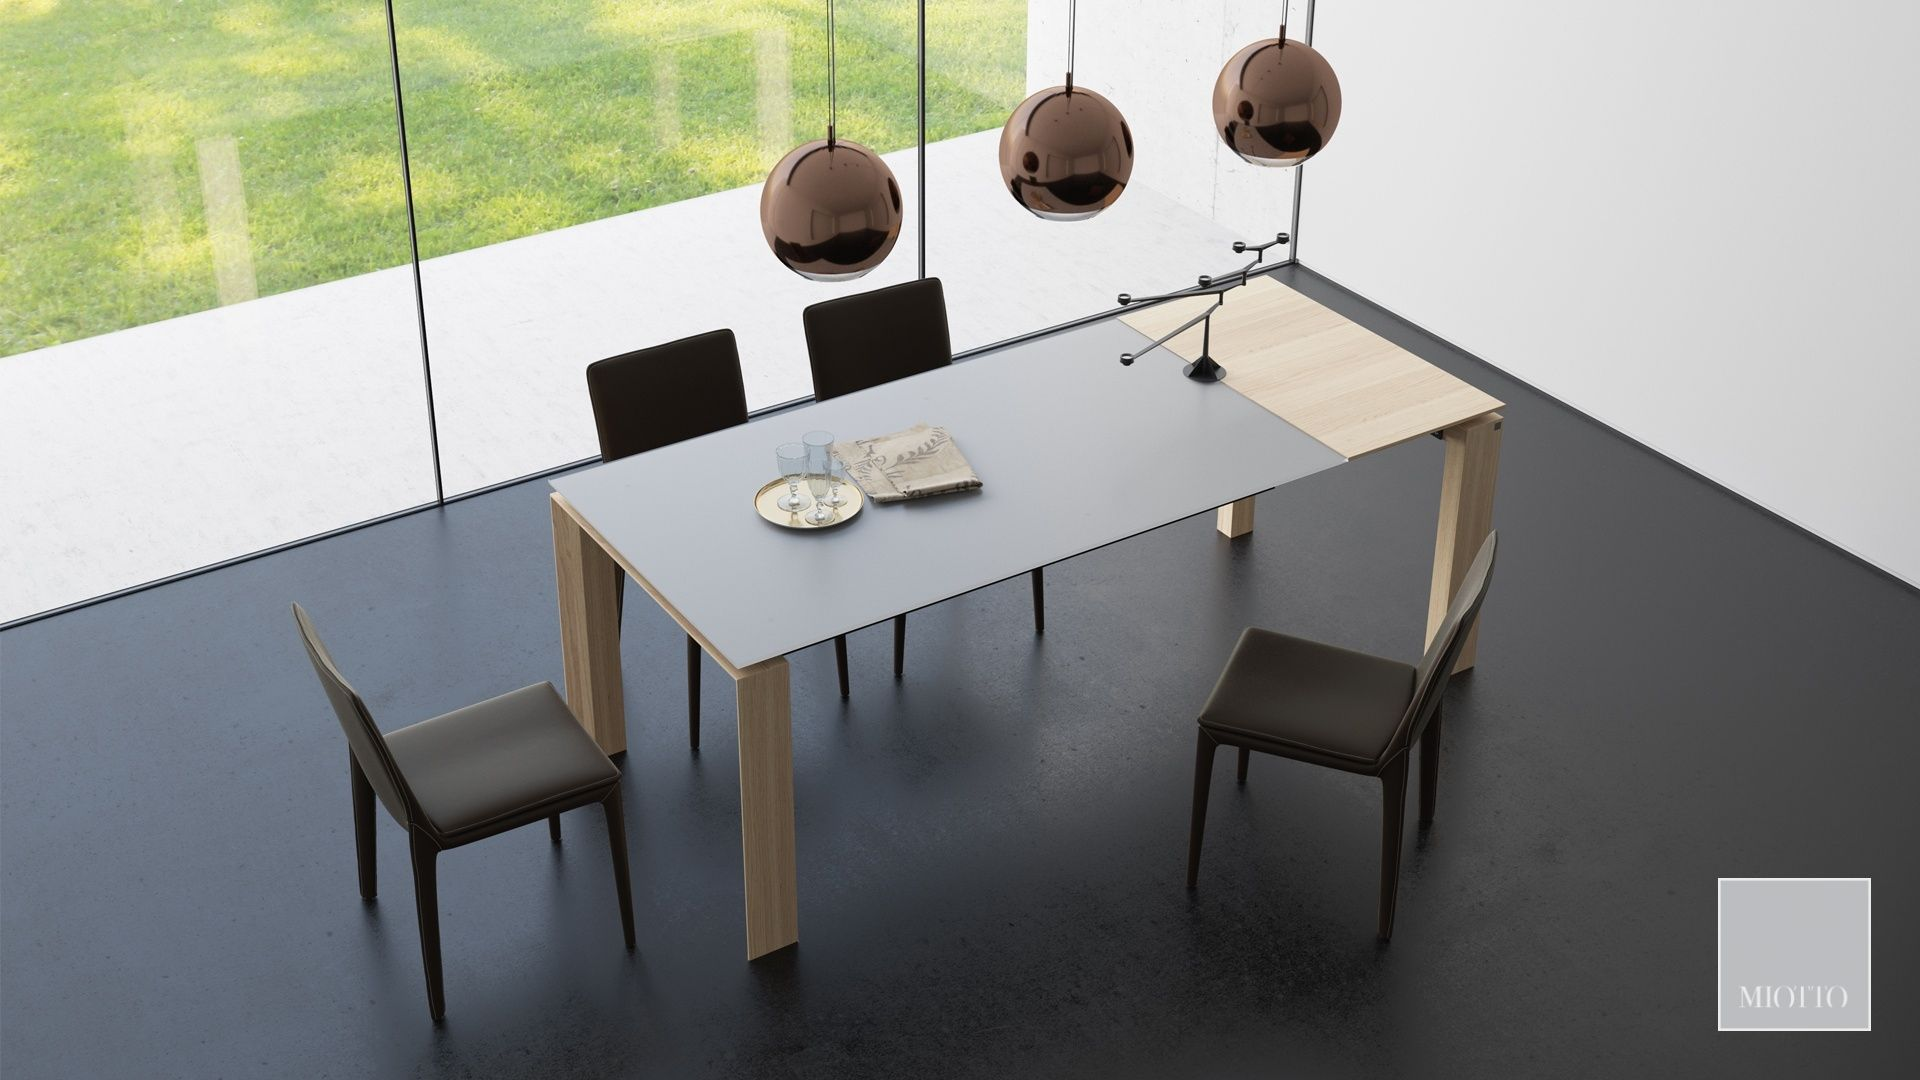 miotto_Parona light dining table torano dark brown dining chair royalia pendant lamp